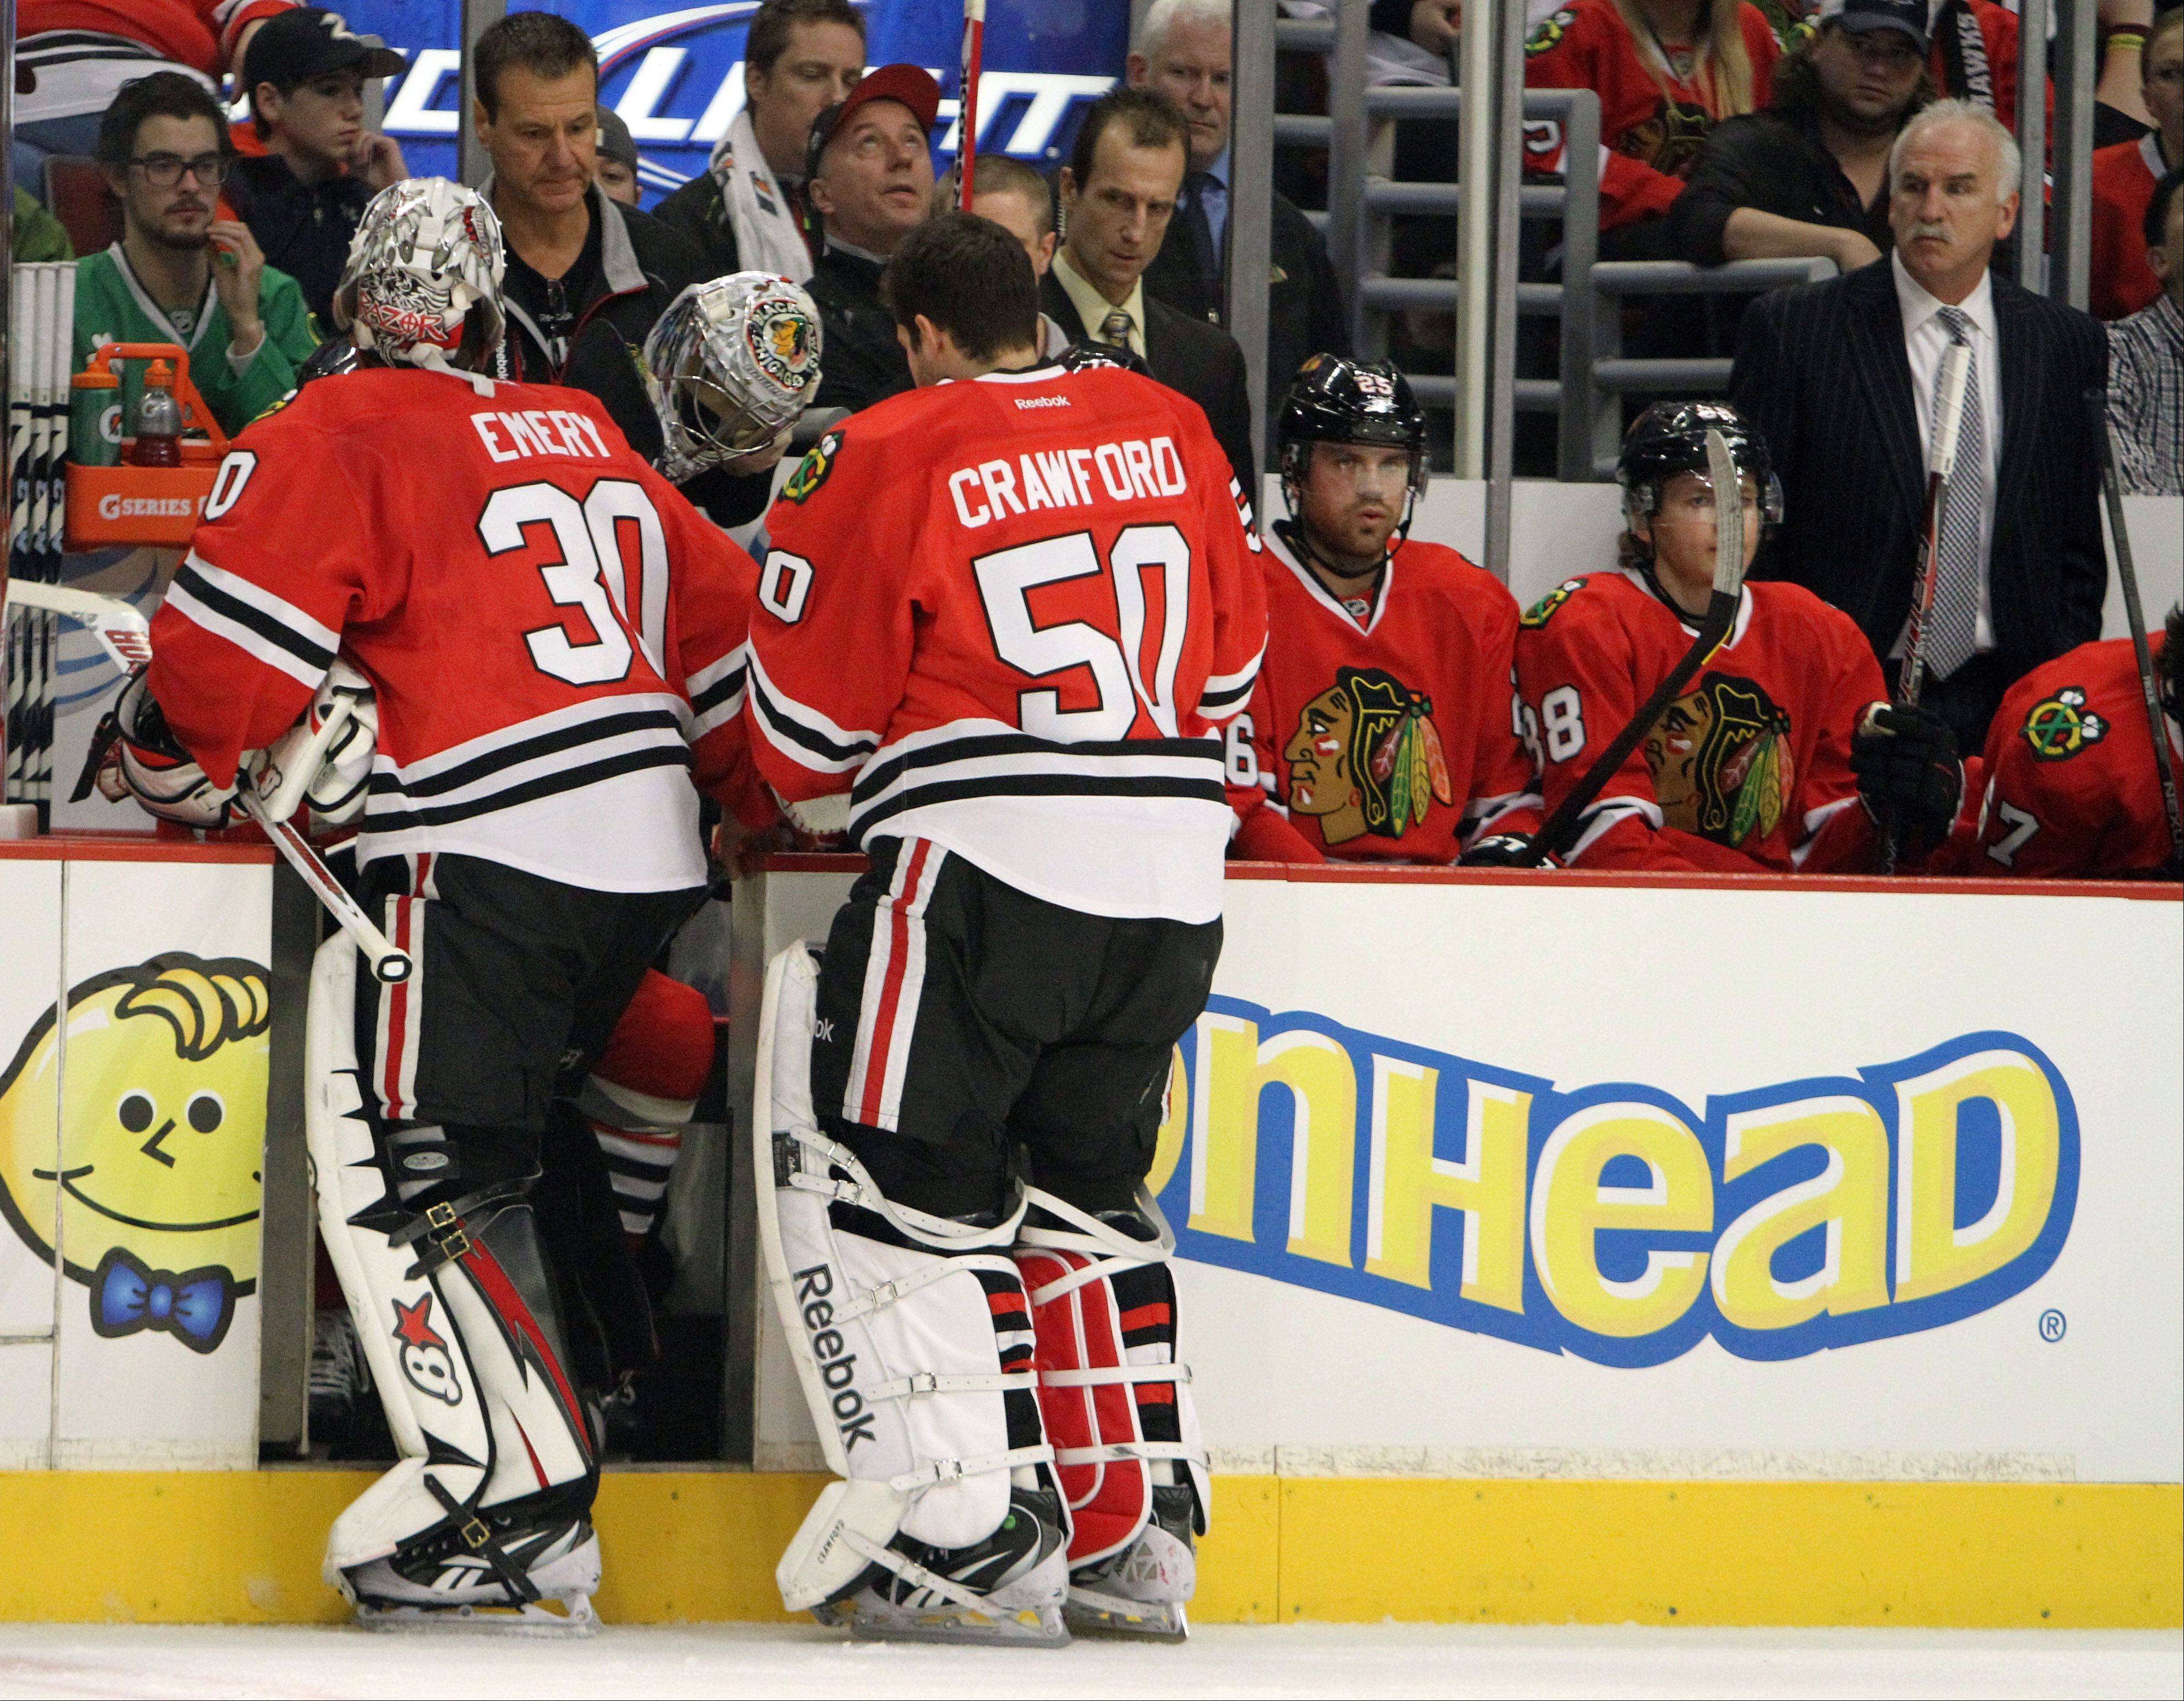 Chicago Blackhawks goalie Ray Emery is replaced by Corey Crawford in the first period during their game Sunday night at the United Center in Chicago.